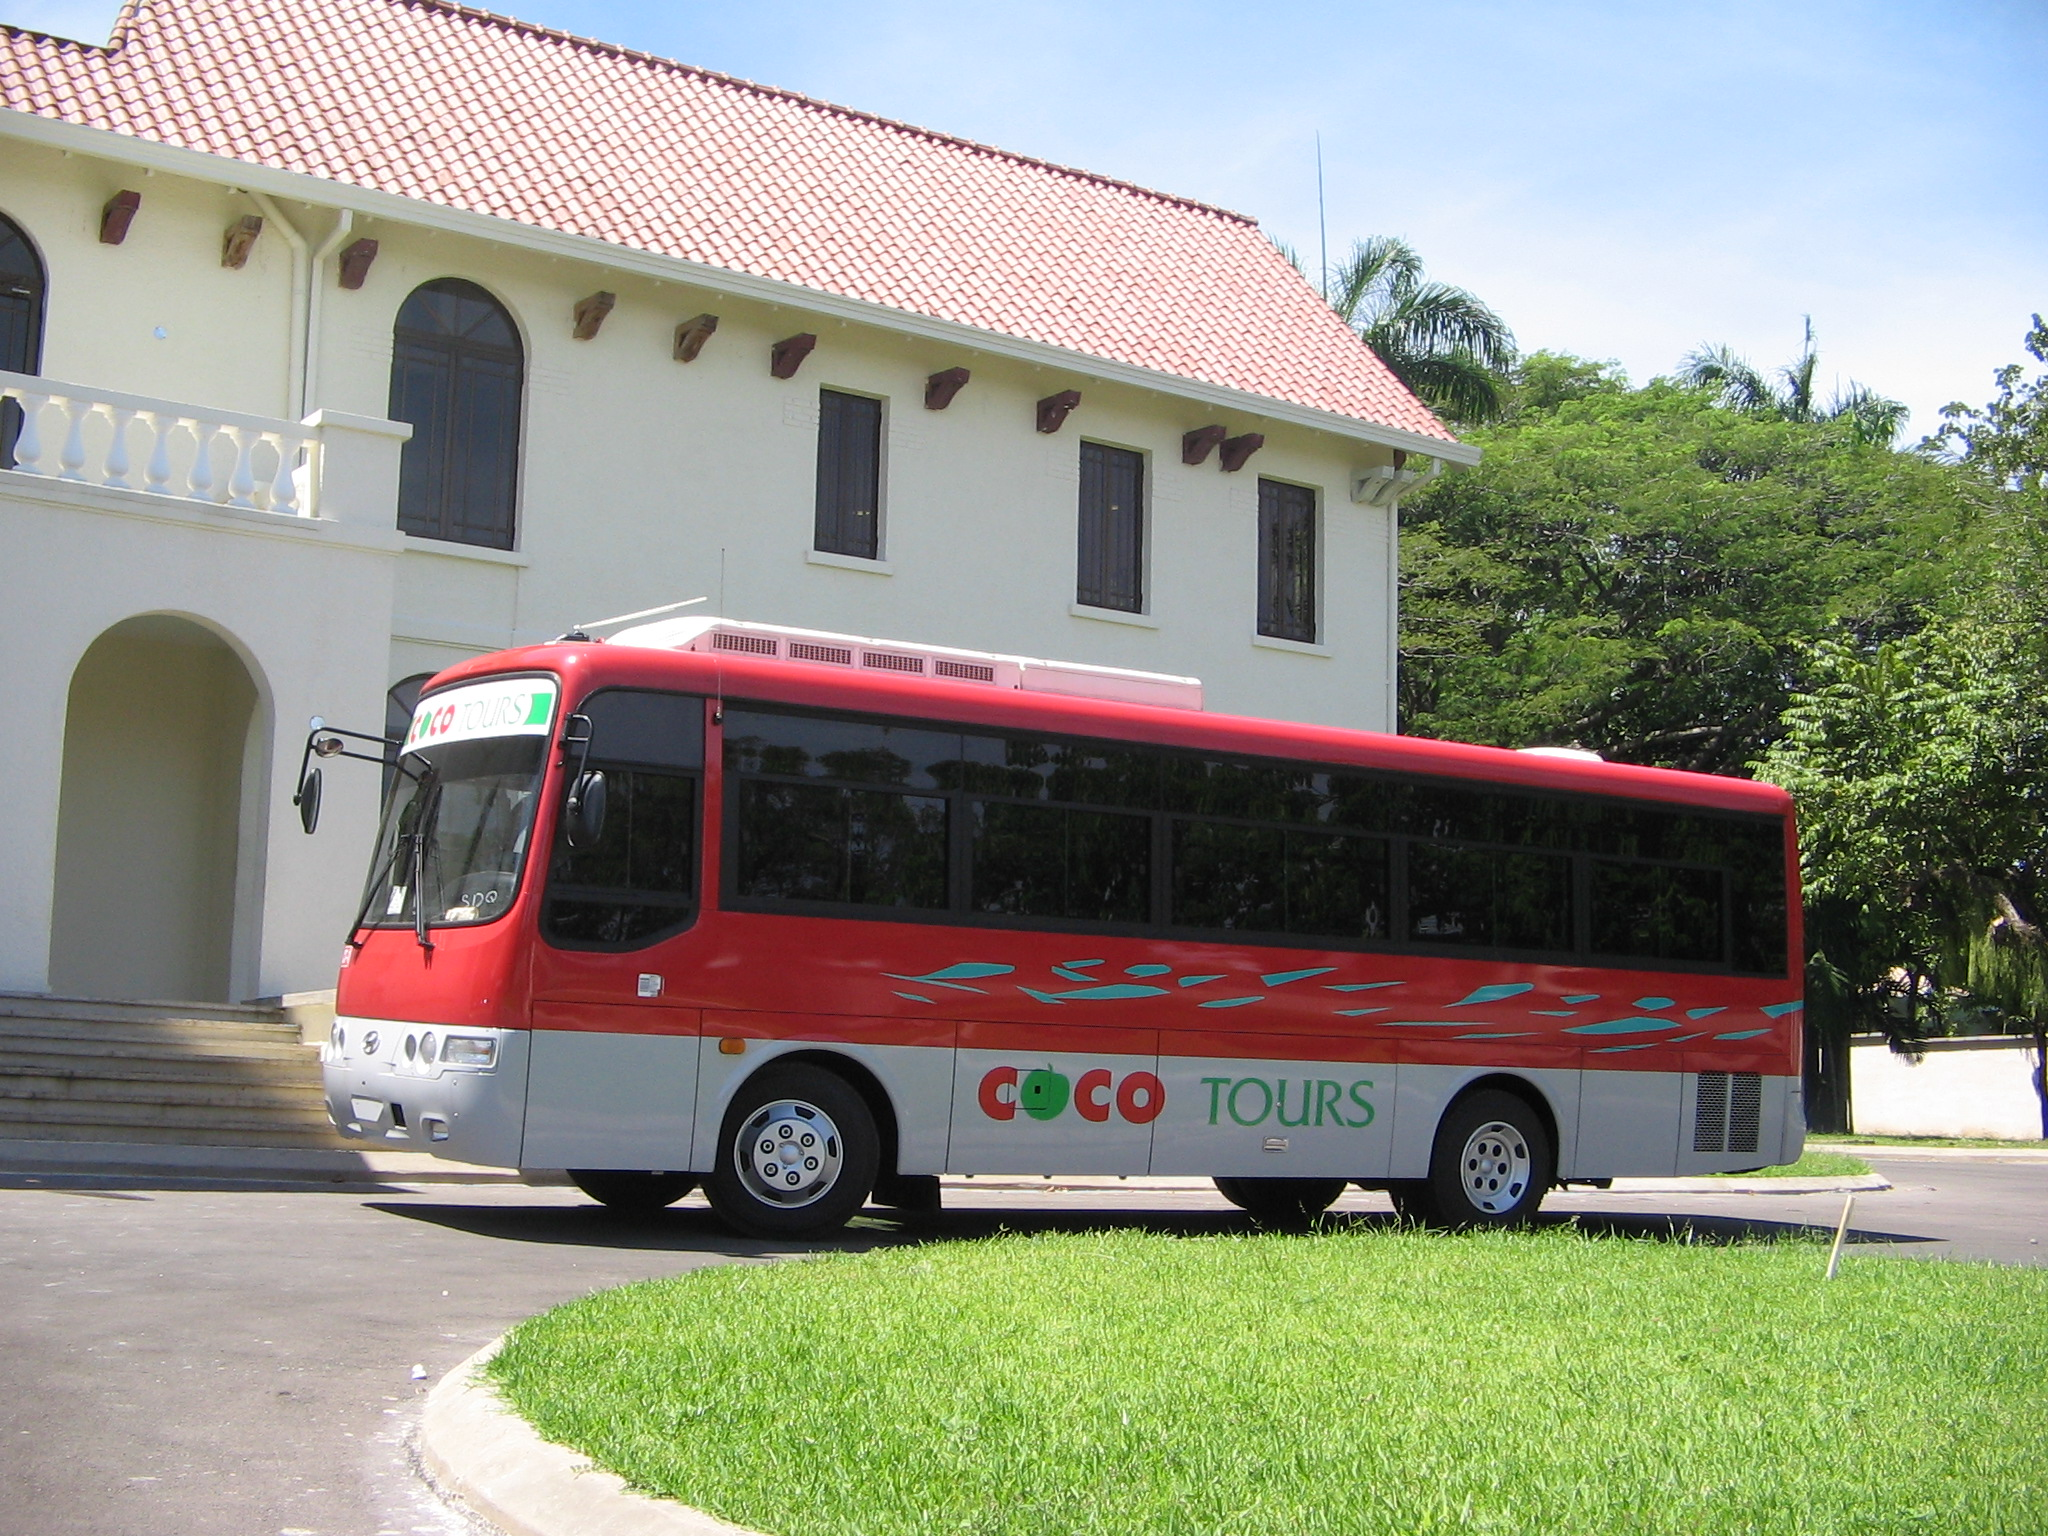 Larger Cocotours bus used on the route from Punta Cana to Santiago